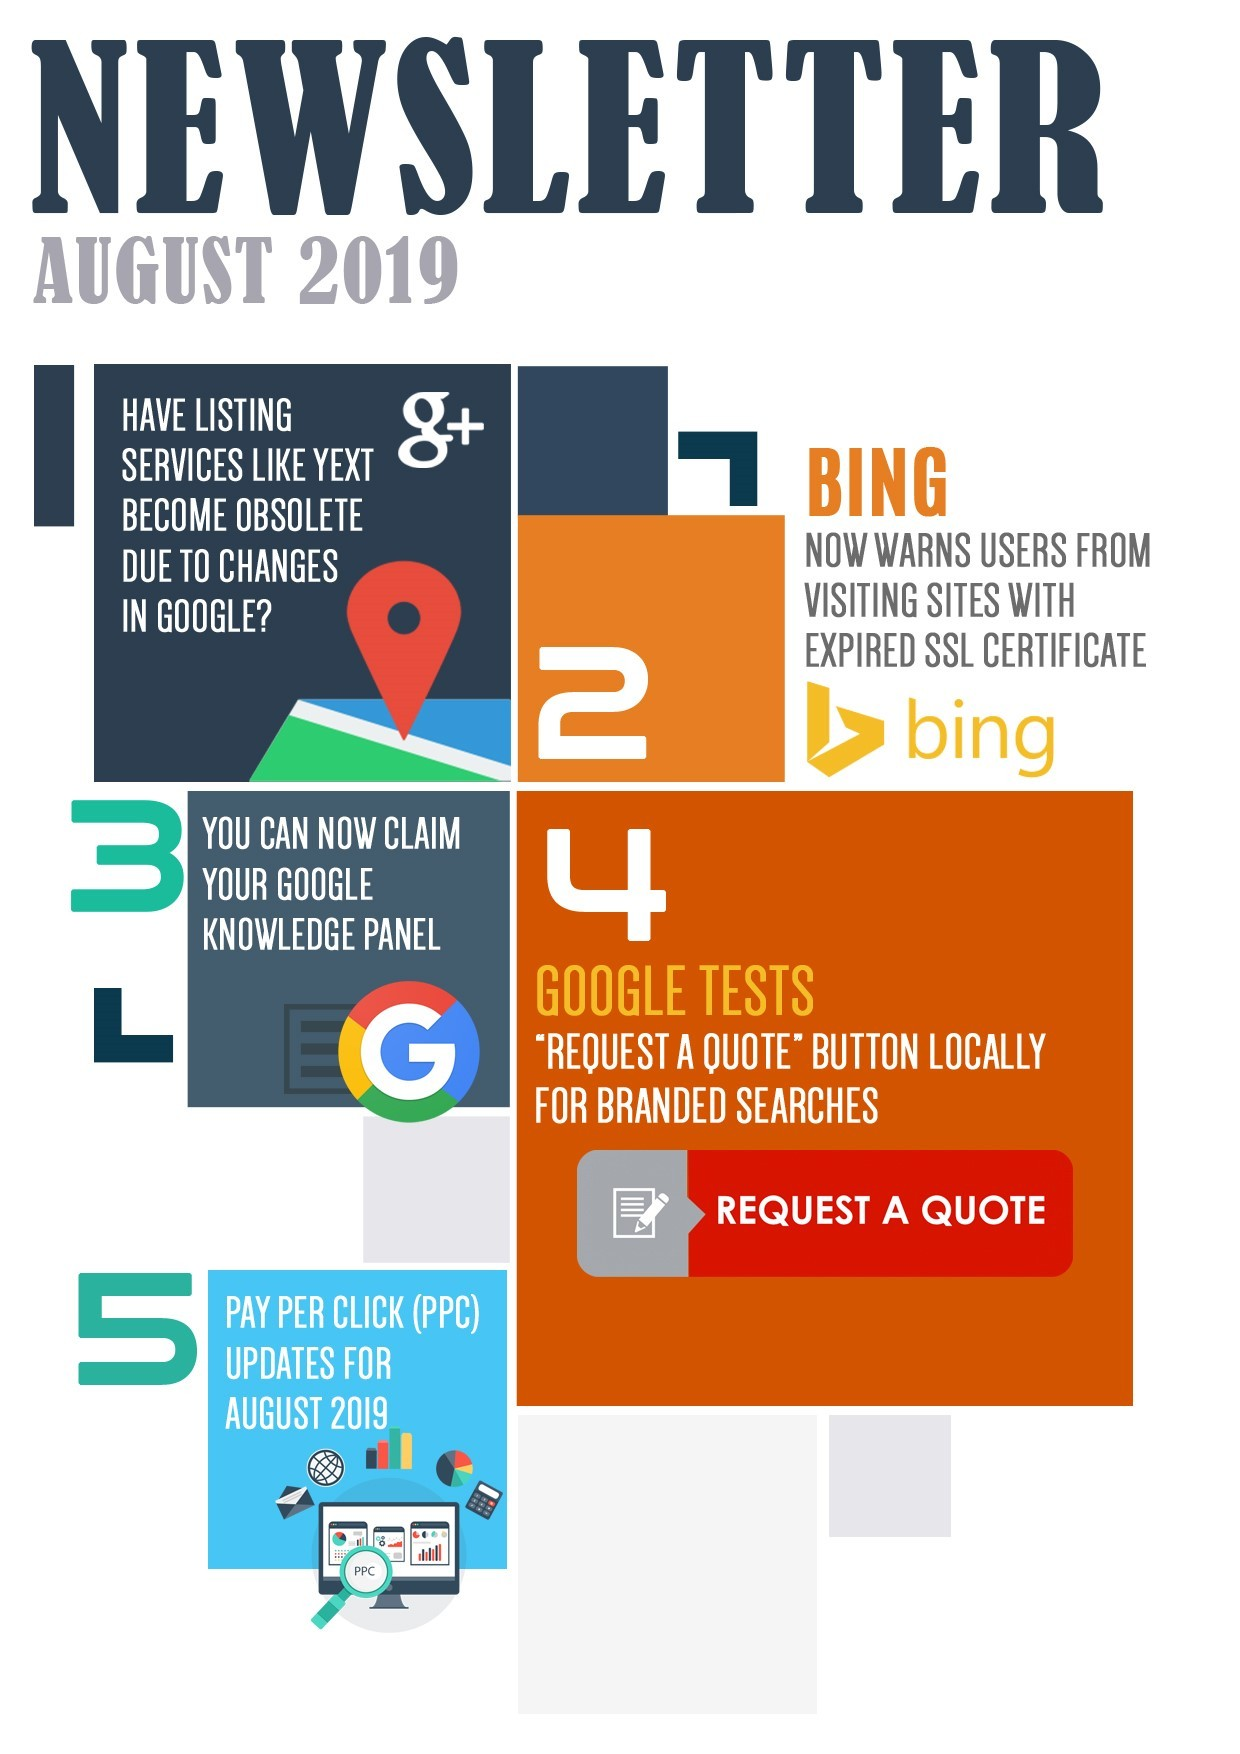 """Pay Per Click Update for August 2019 - Newsletter August 2019, HAVE LISTING SERVICES LIKE YEXT BECOME OBSOLETE DUE TO CHANGES IN GOOGLE?, BING NOW WARNS USERS FROM VISITING SITES WITH EXPIRED SSL CERTIFICATE, YOU CAN NOW CLAIM YOUR GOOGLE KNOWLEDGE PANEL, GOOGLE TESTS """"REQUEST A QUOTE"""" BUTTON LOCALLY FOR BRANDED SEARCHES, PAY PER CLICK (PPC) UPDATES FOR AUGUST 2019, what is digital marketing, digital marketing course, check google rank, online business idea, online marketing articles, online marketing courses, how to start online marketing, social media marketing, facebook marketing, instagram marketing, what is smo, smo tools, social media marketing plan, social media campaign ideas, website traffic checker, facebook ads, instagram ads, auto likes free, how can i get facebook likes, how to increase facebook likes, how to promote in facebook, what is payperclick"""